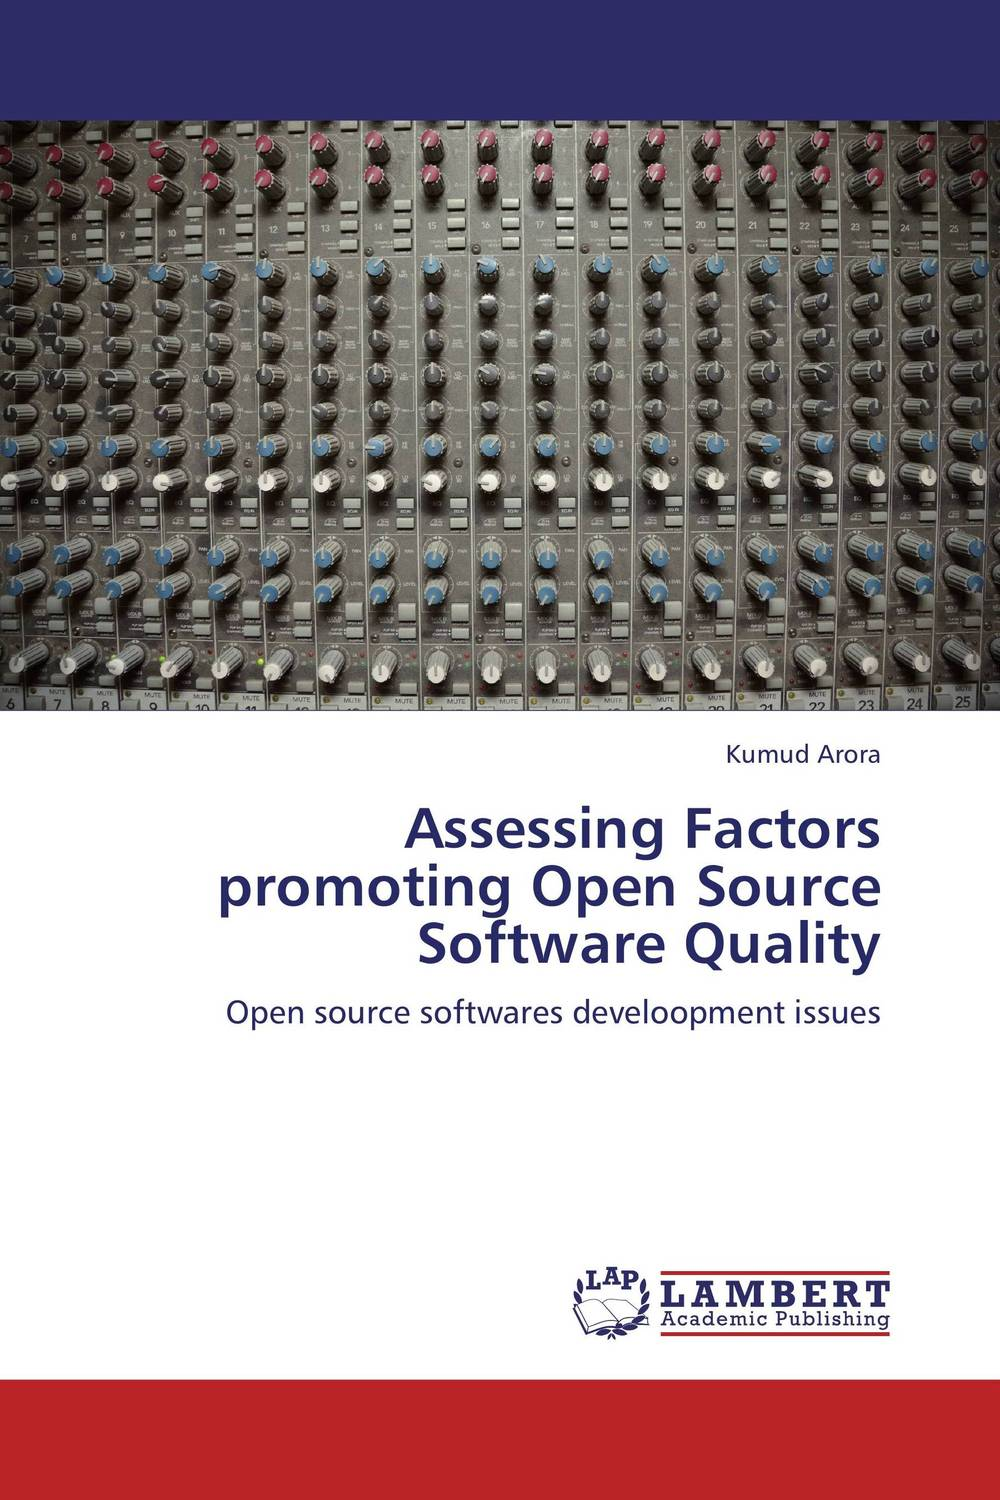 Assessing Factors promoting Open Source Software Quality assessing factors promoting open source software quality